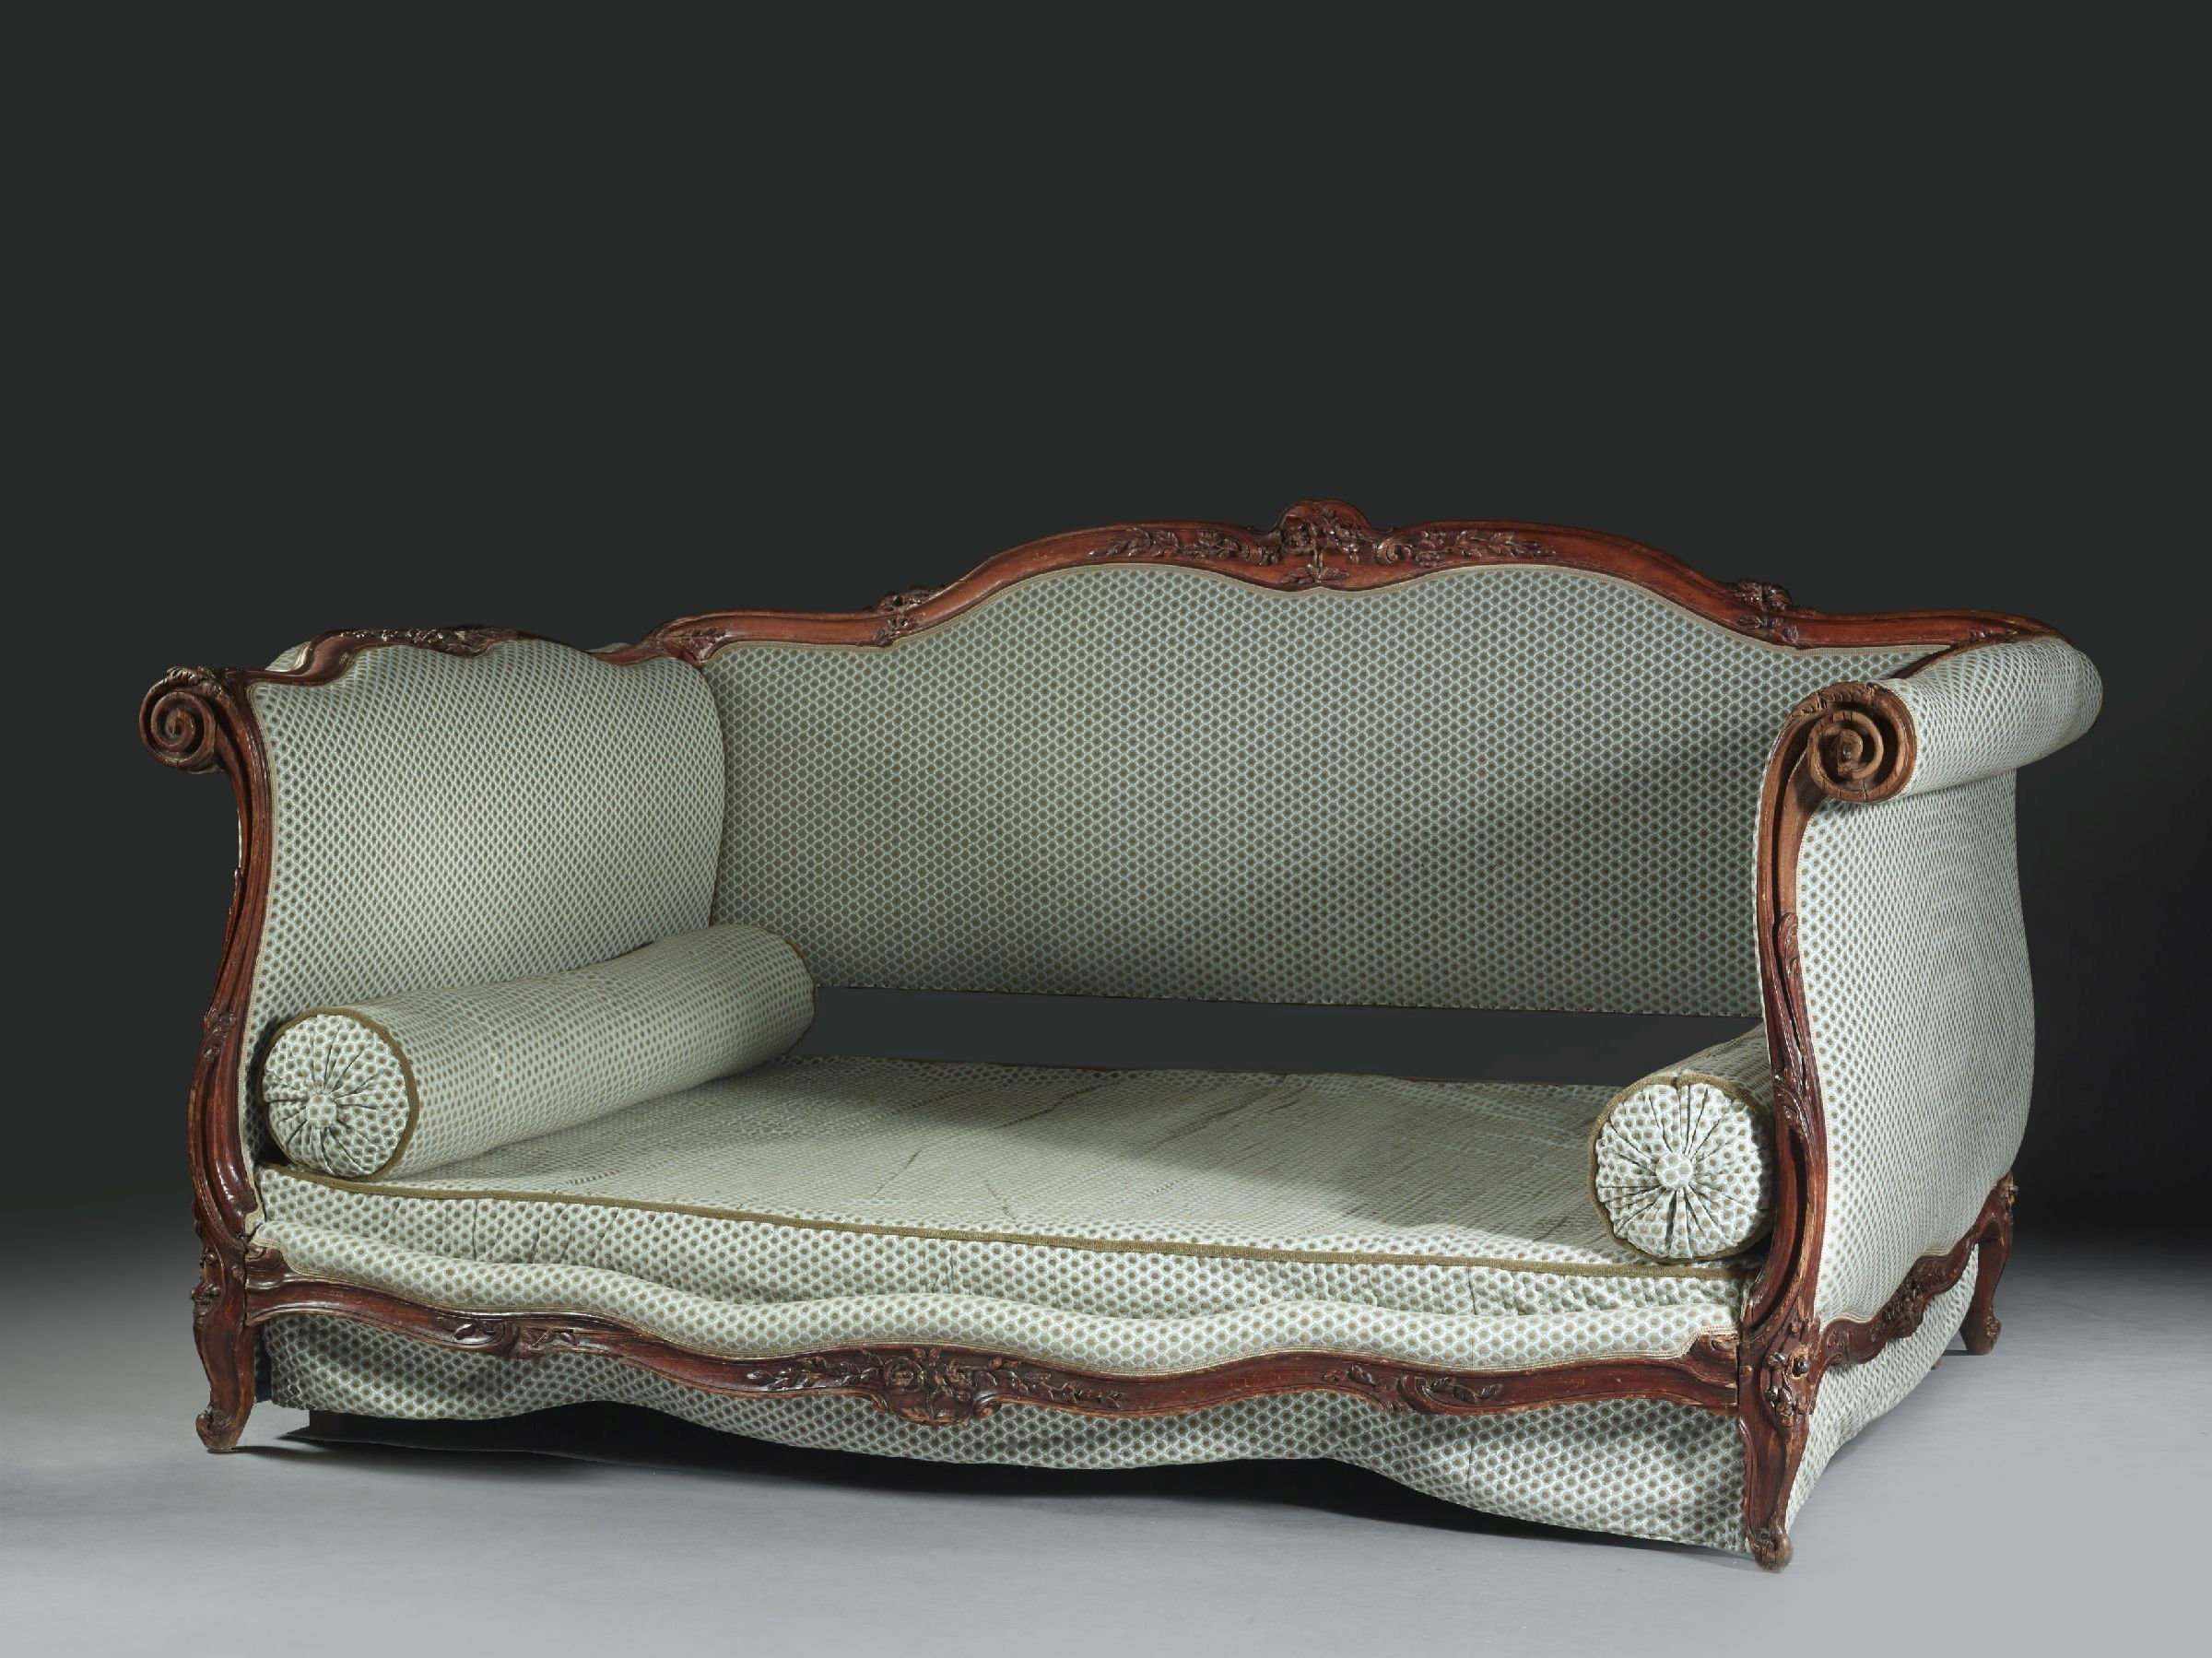 Red Rococo Chaise Lounge Design Pinterest